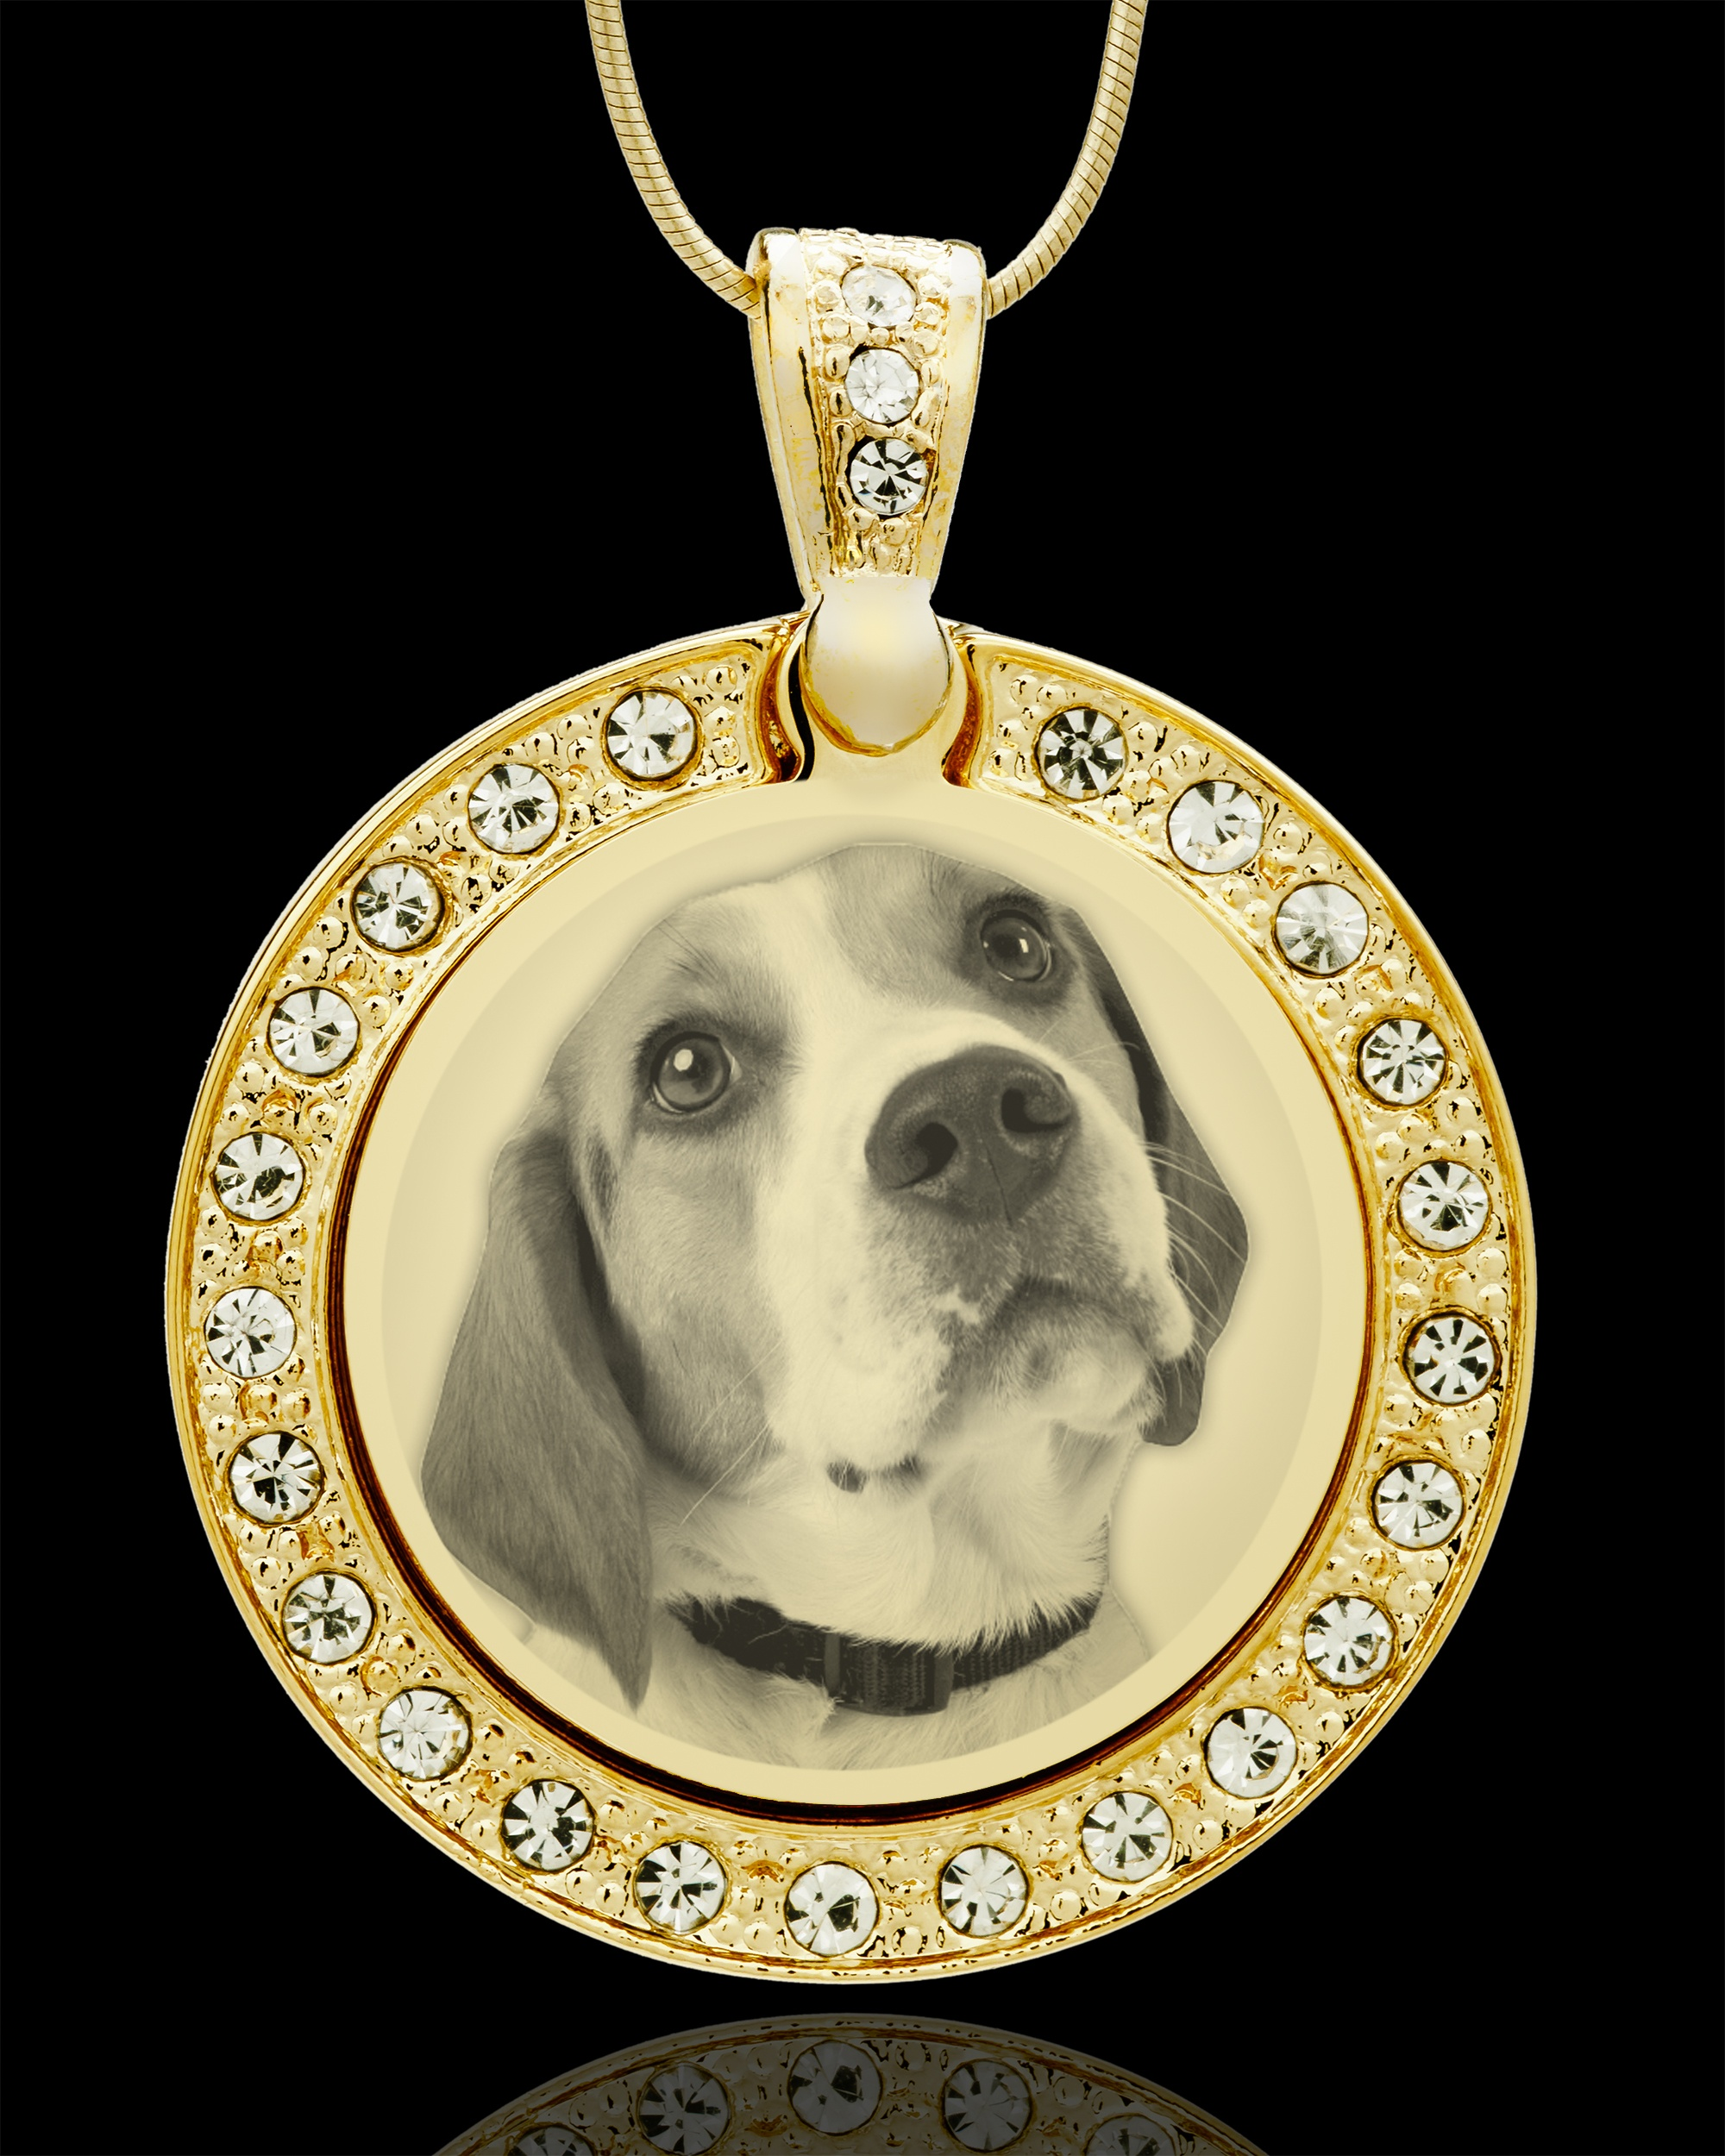 Jewelry Keepsakes81-1351Photo Eng Gem Circle Pet Pendant Gold Plated.jpg808